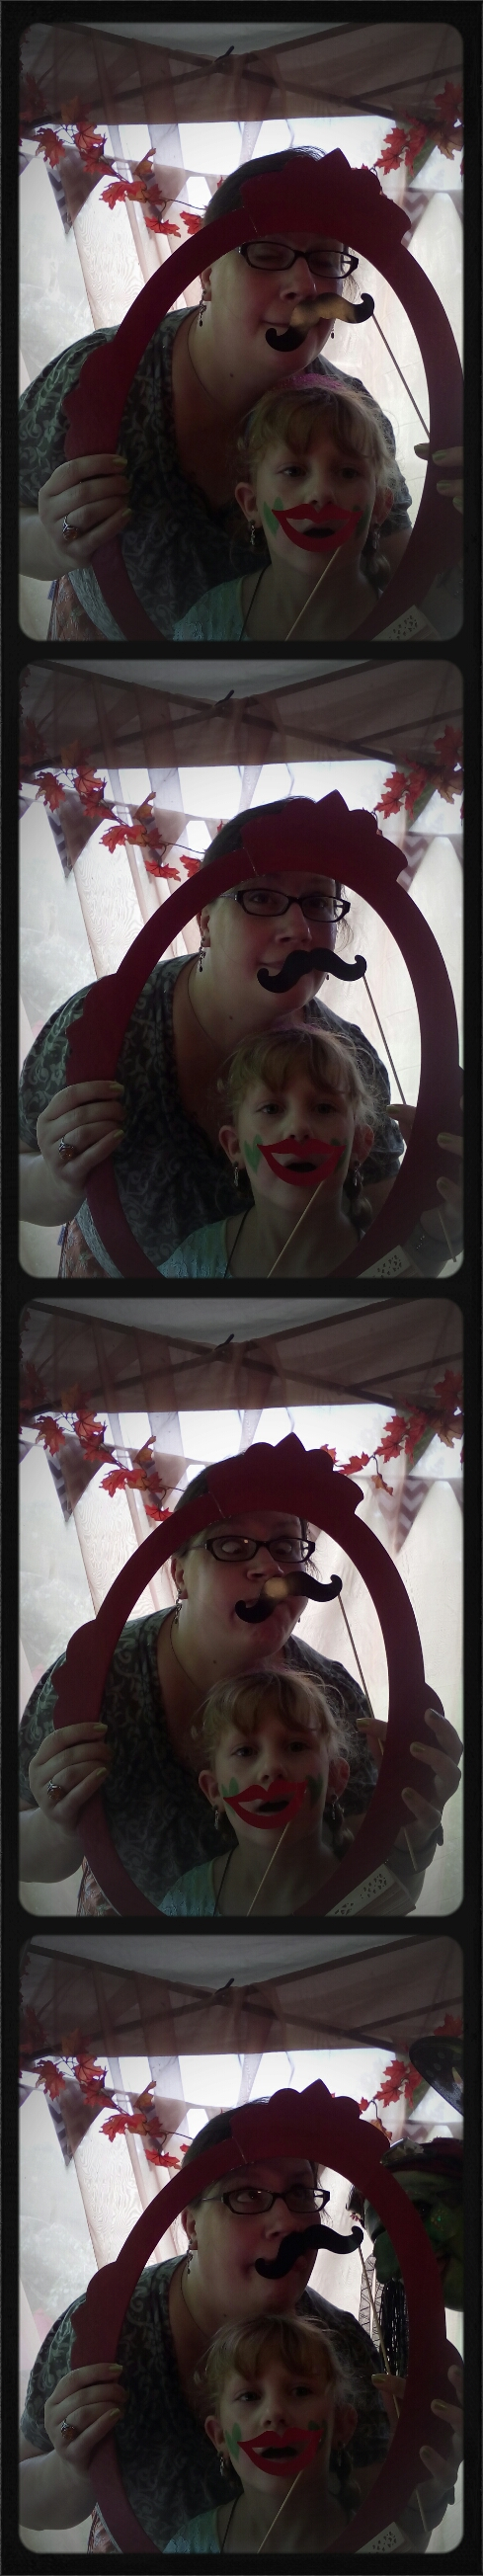 Pocketbooth_20150613112623